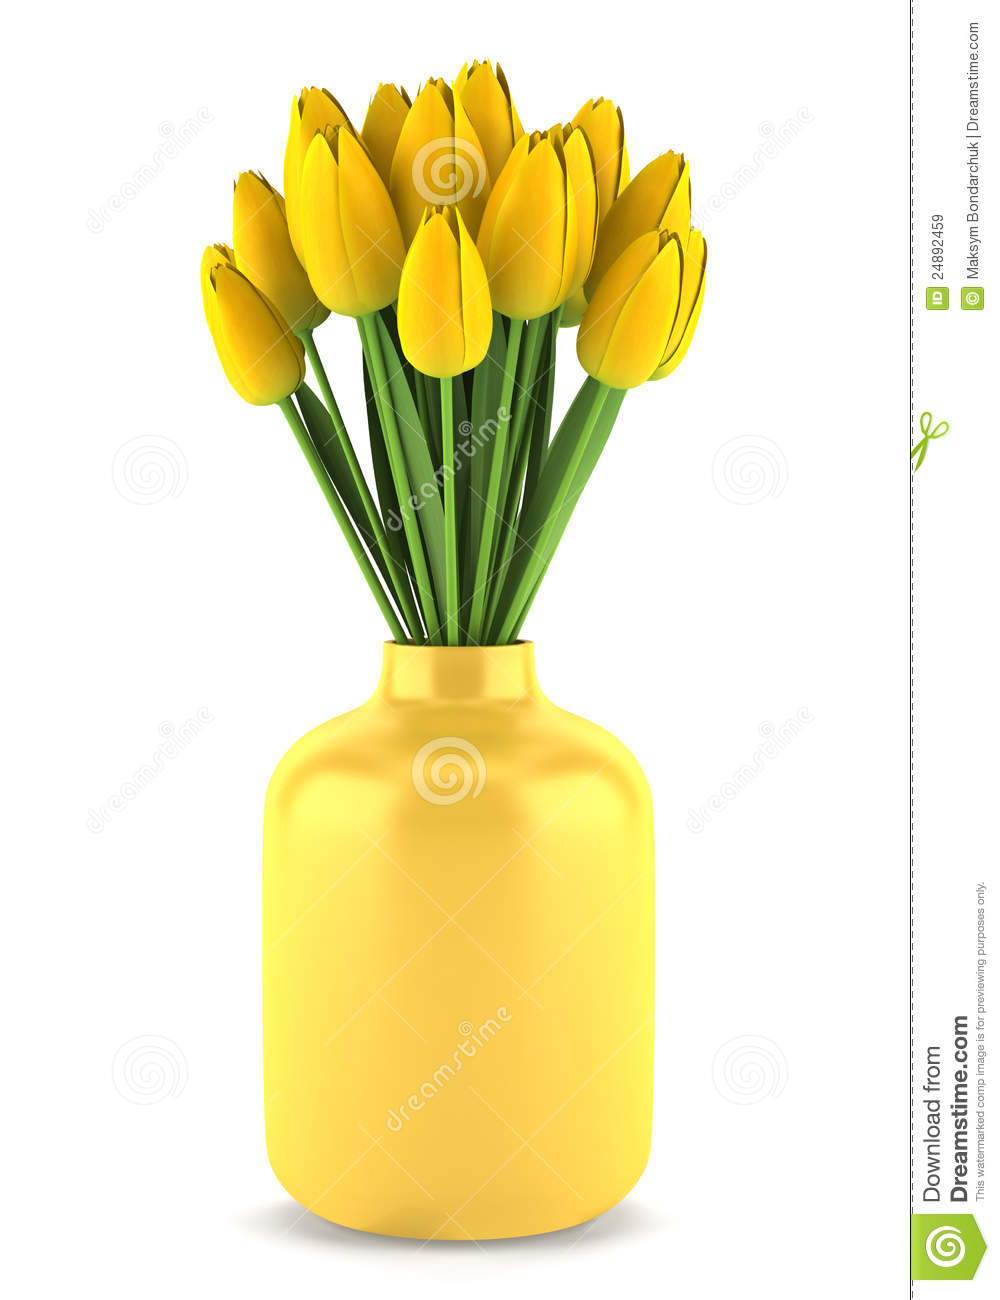 Bouquet Of Yellow Tulips In Vase Isolated On White Royalty Free Stock ...